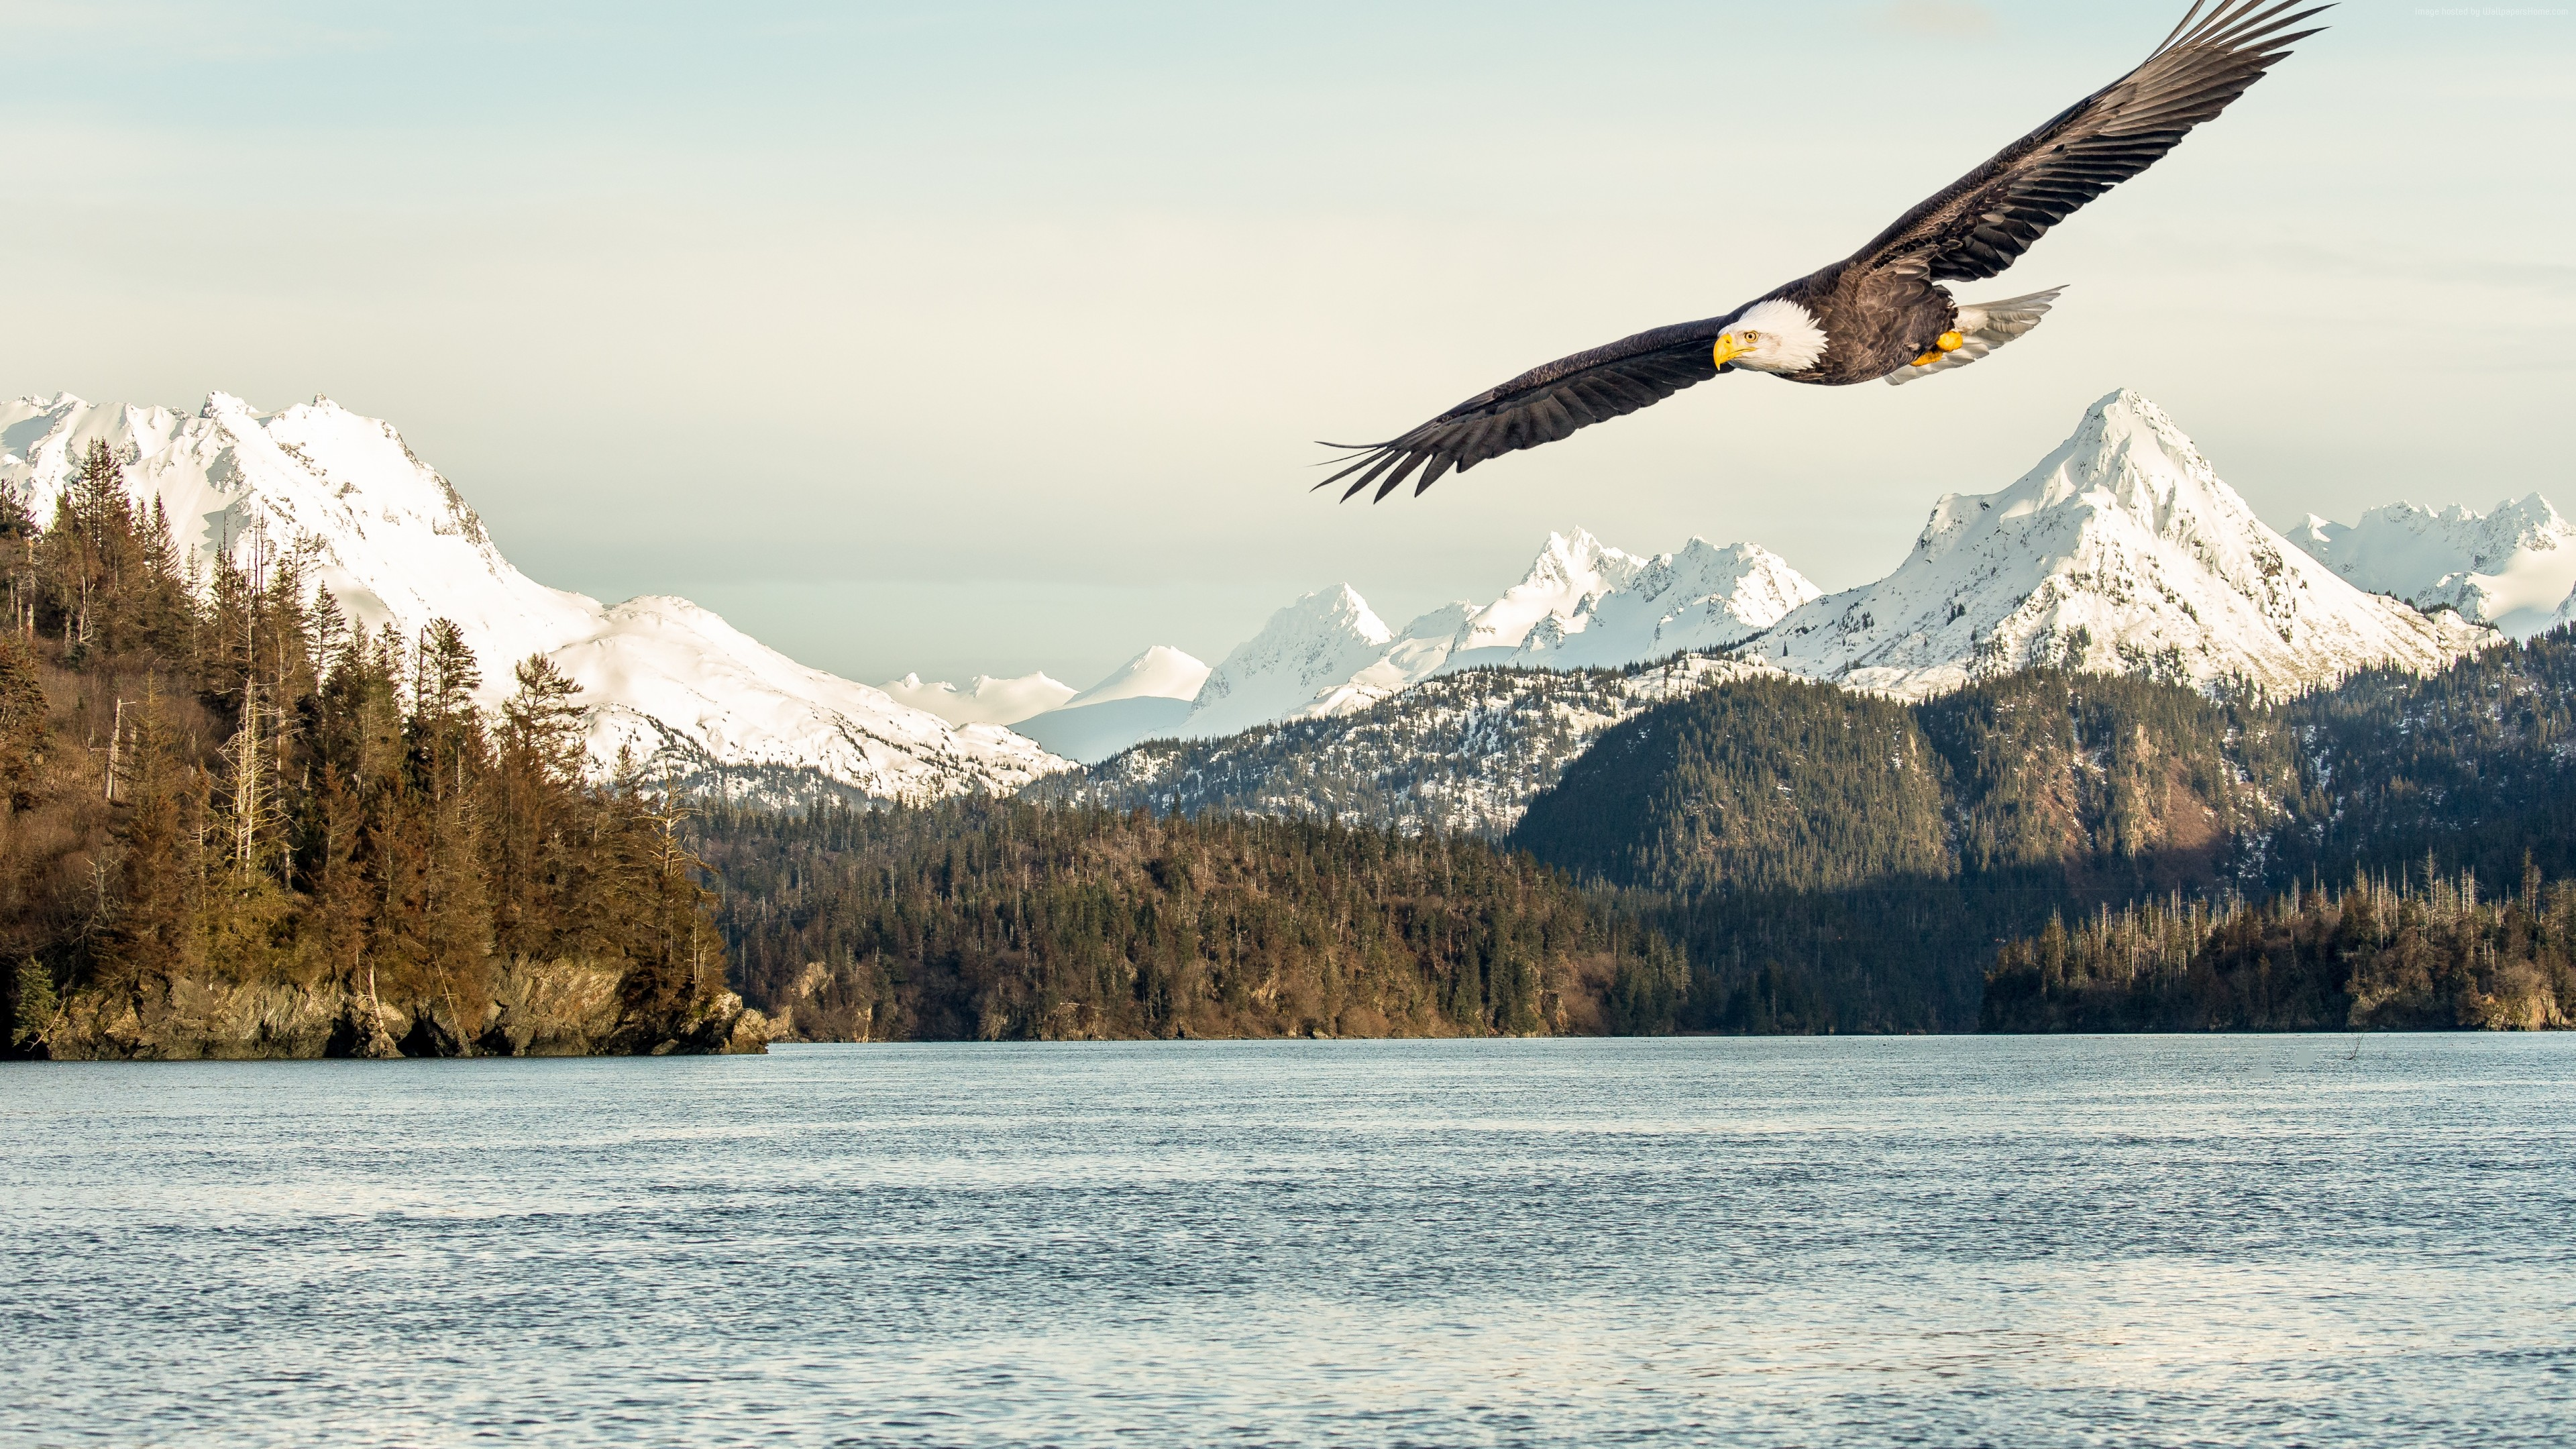 Wallpaper eagle, mountains, lake, 5k, Animals